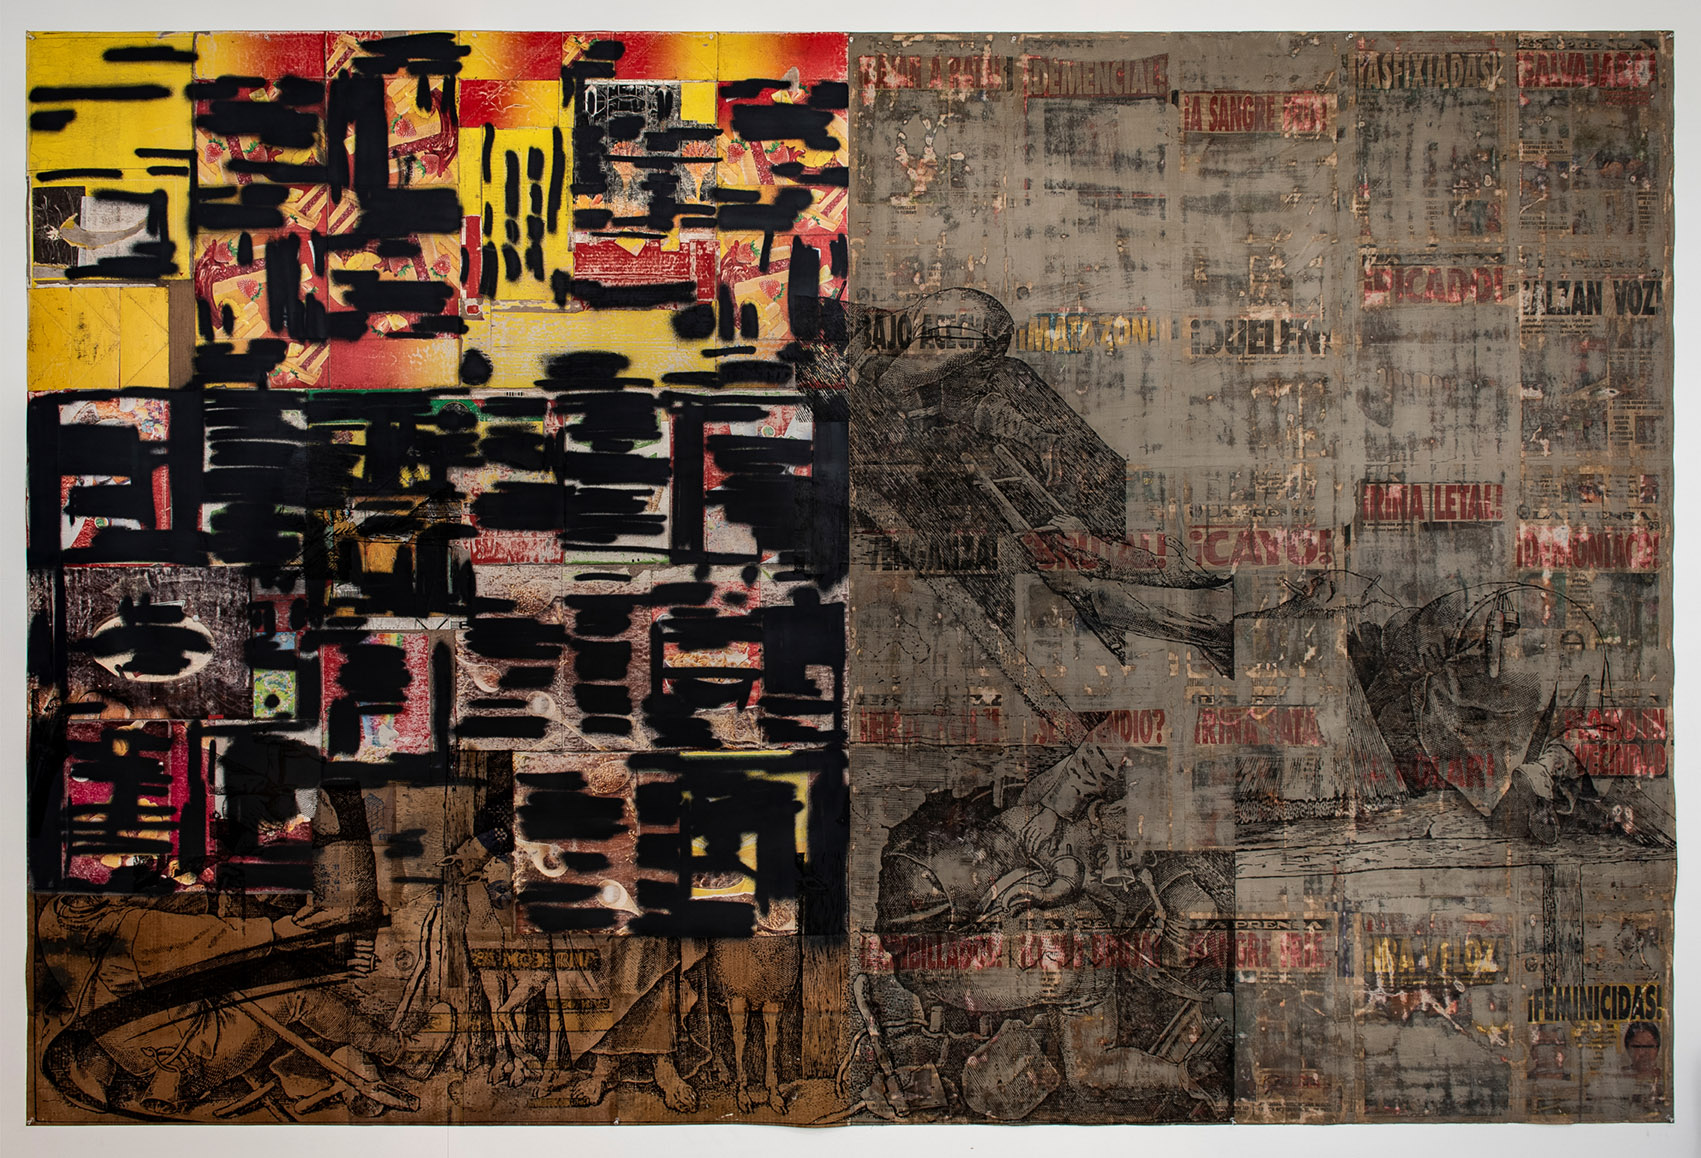 2020 Collage, transfer and enamel on canvas, mixed media, found objects 90 x 118 in (228 x 299 cm) - Marc Straus Gallery